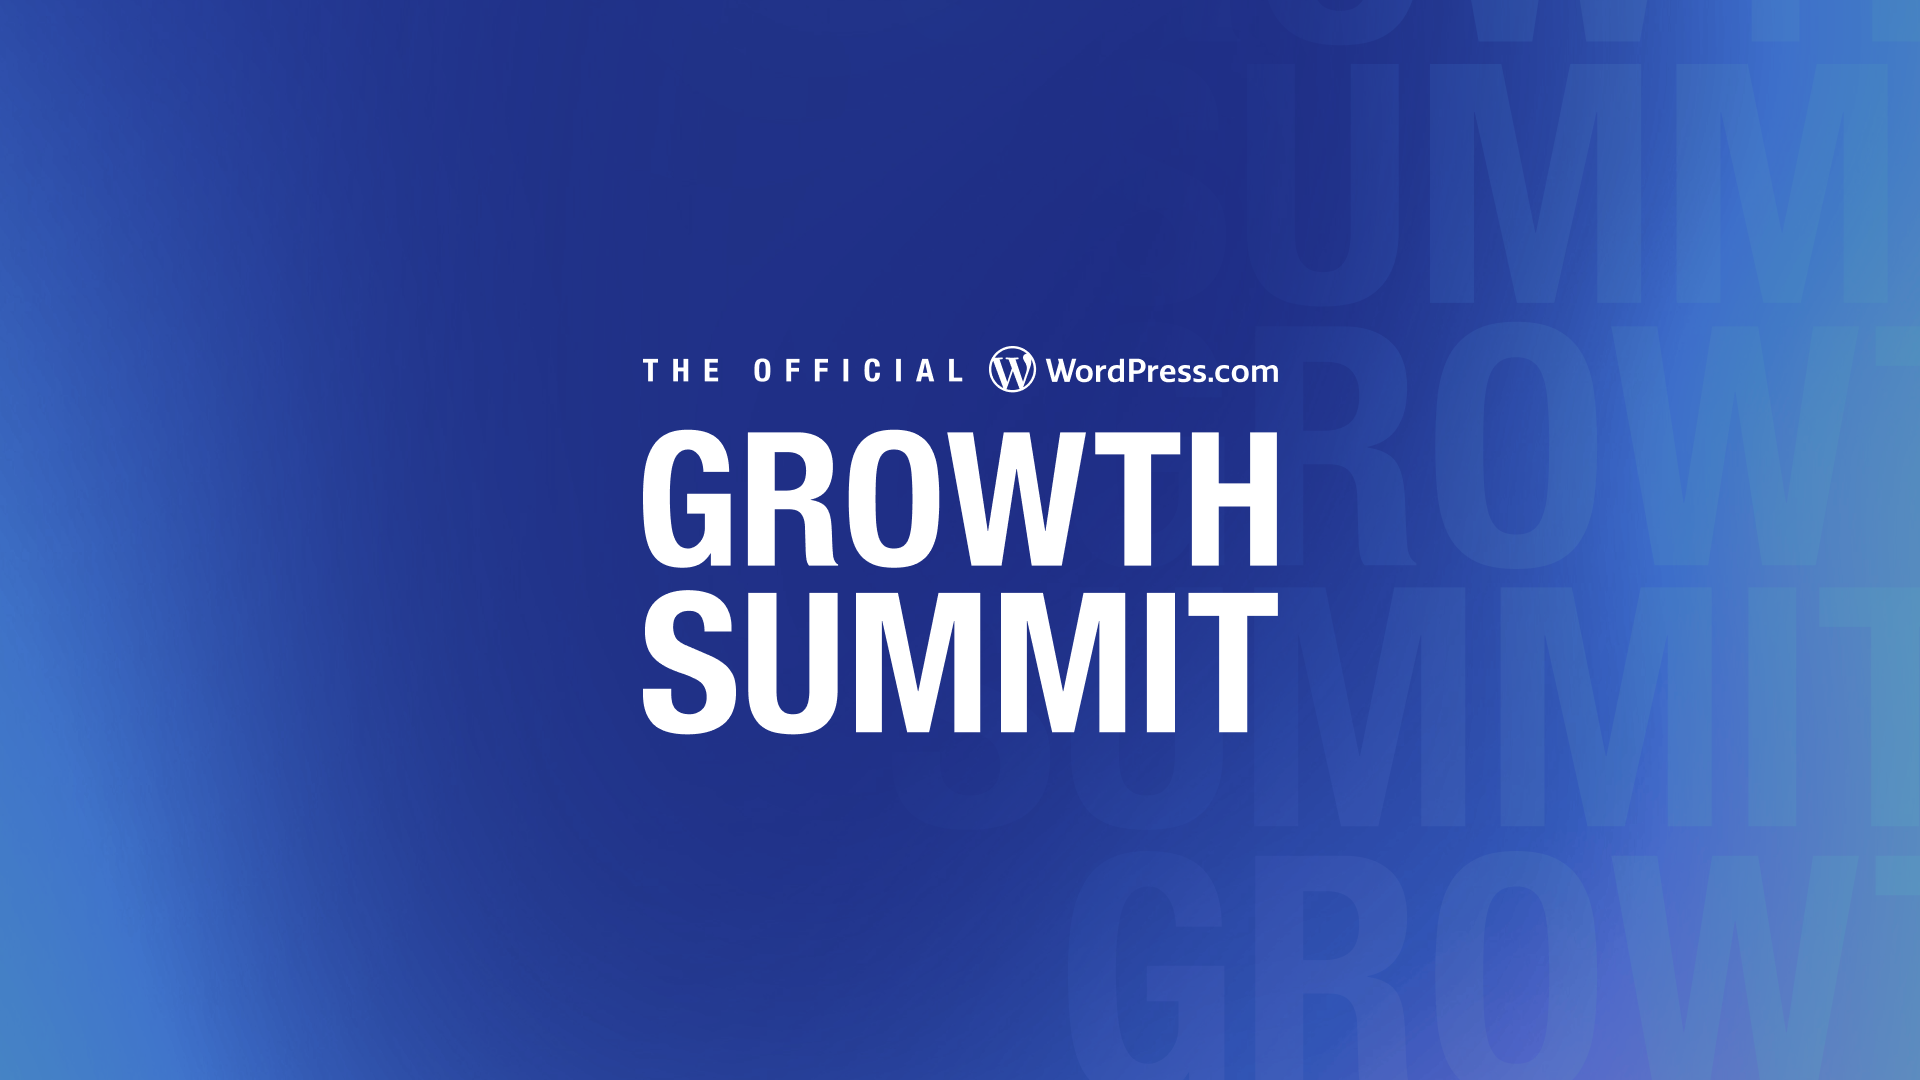 The Second Annual, Official WordPress.com Growth Summit is Coming and You Won't Want to Miss It